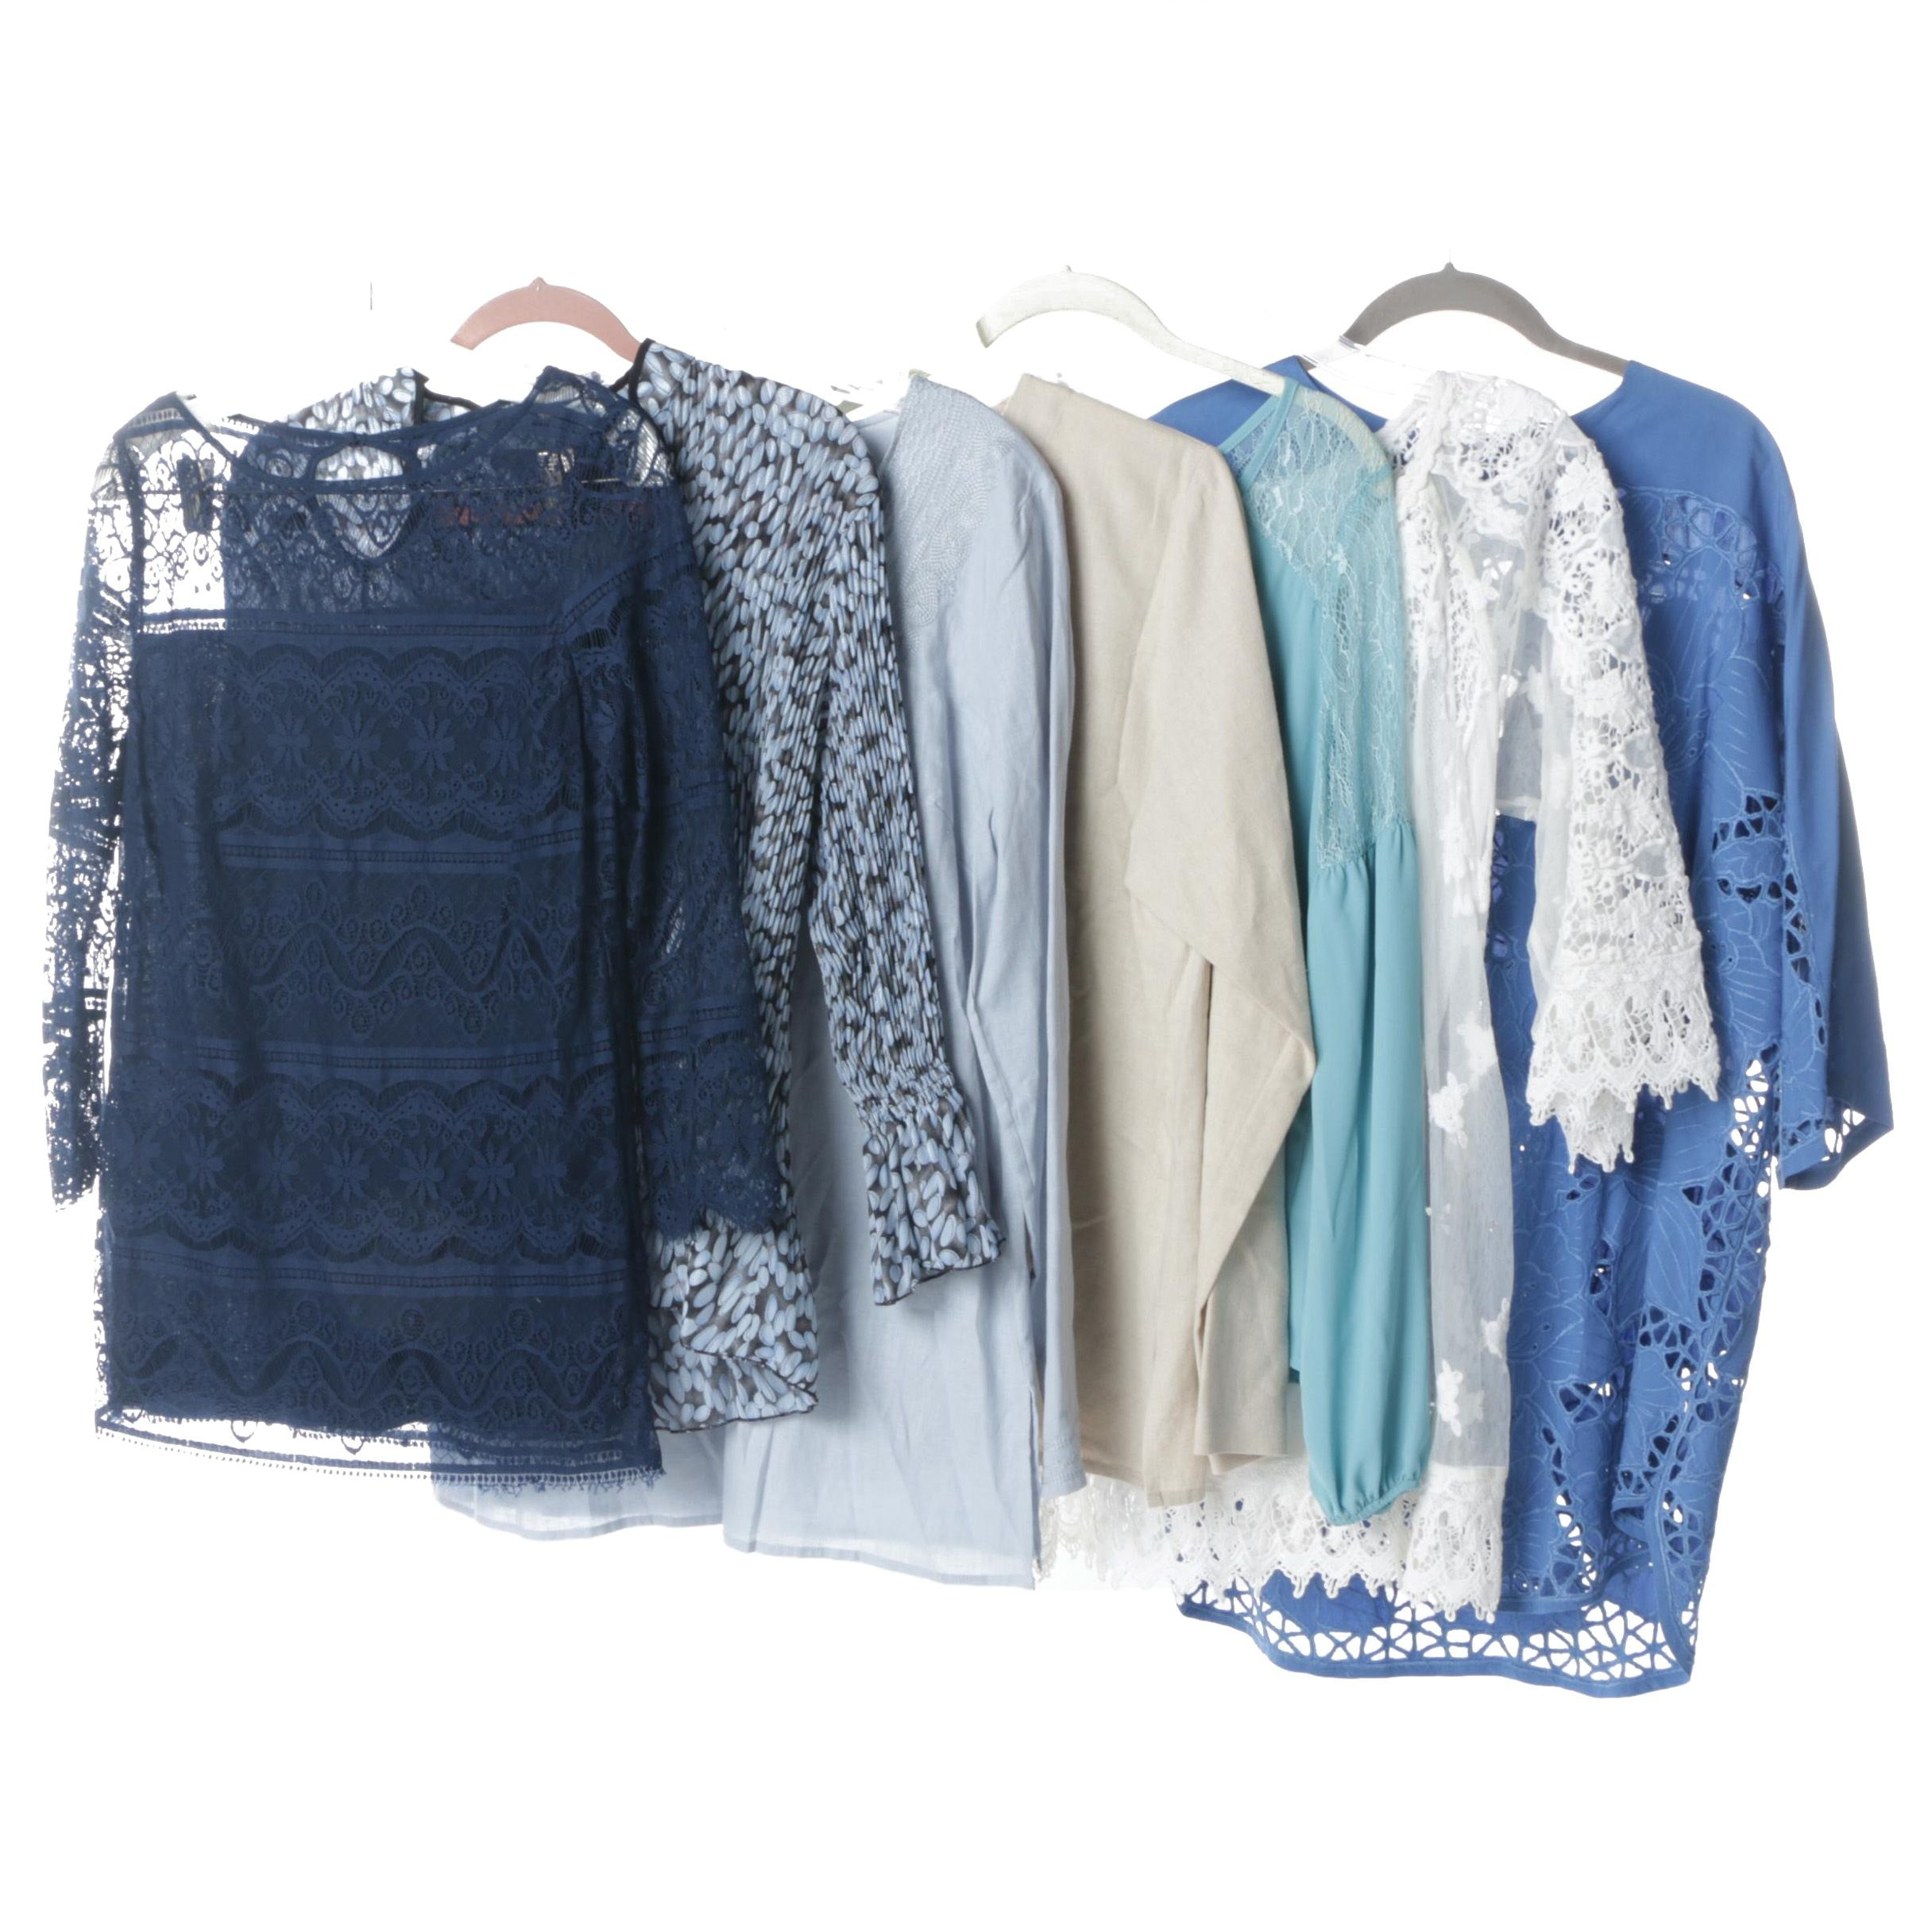 Women's Tops and Tunics Including Lilly Mason and Kenar